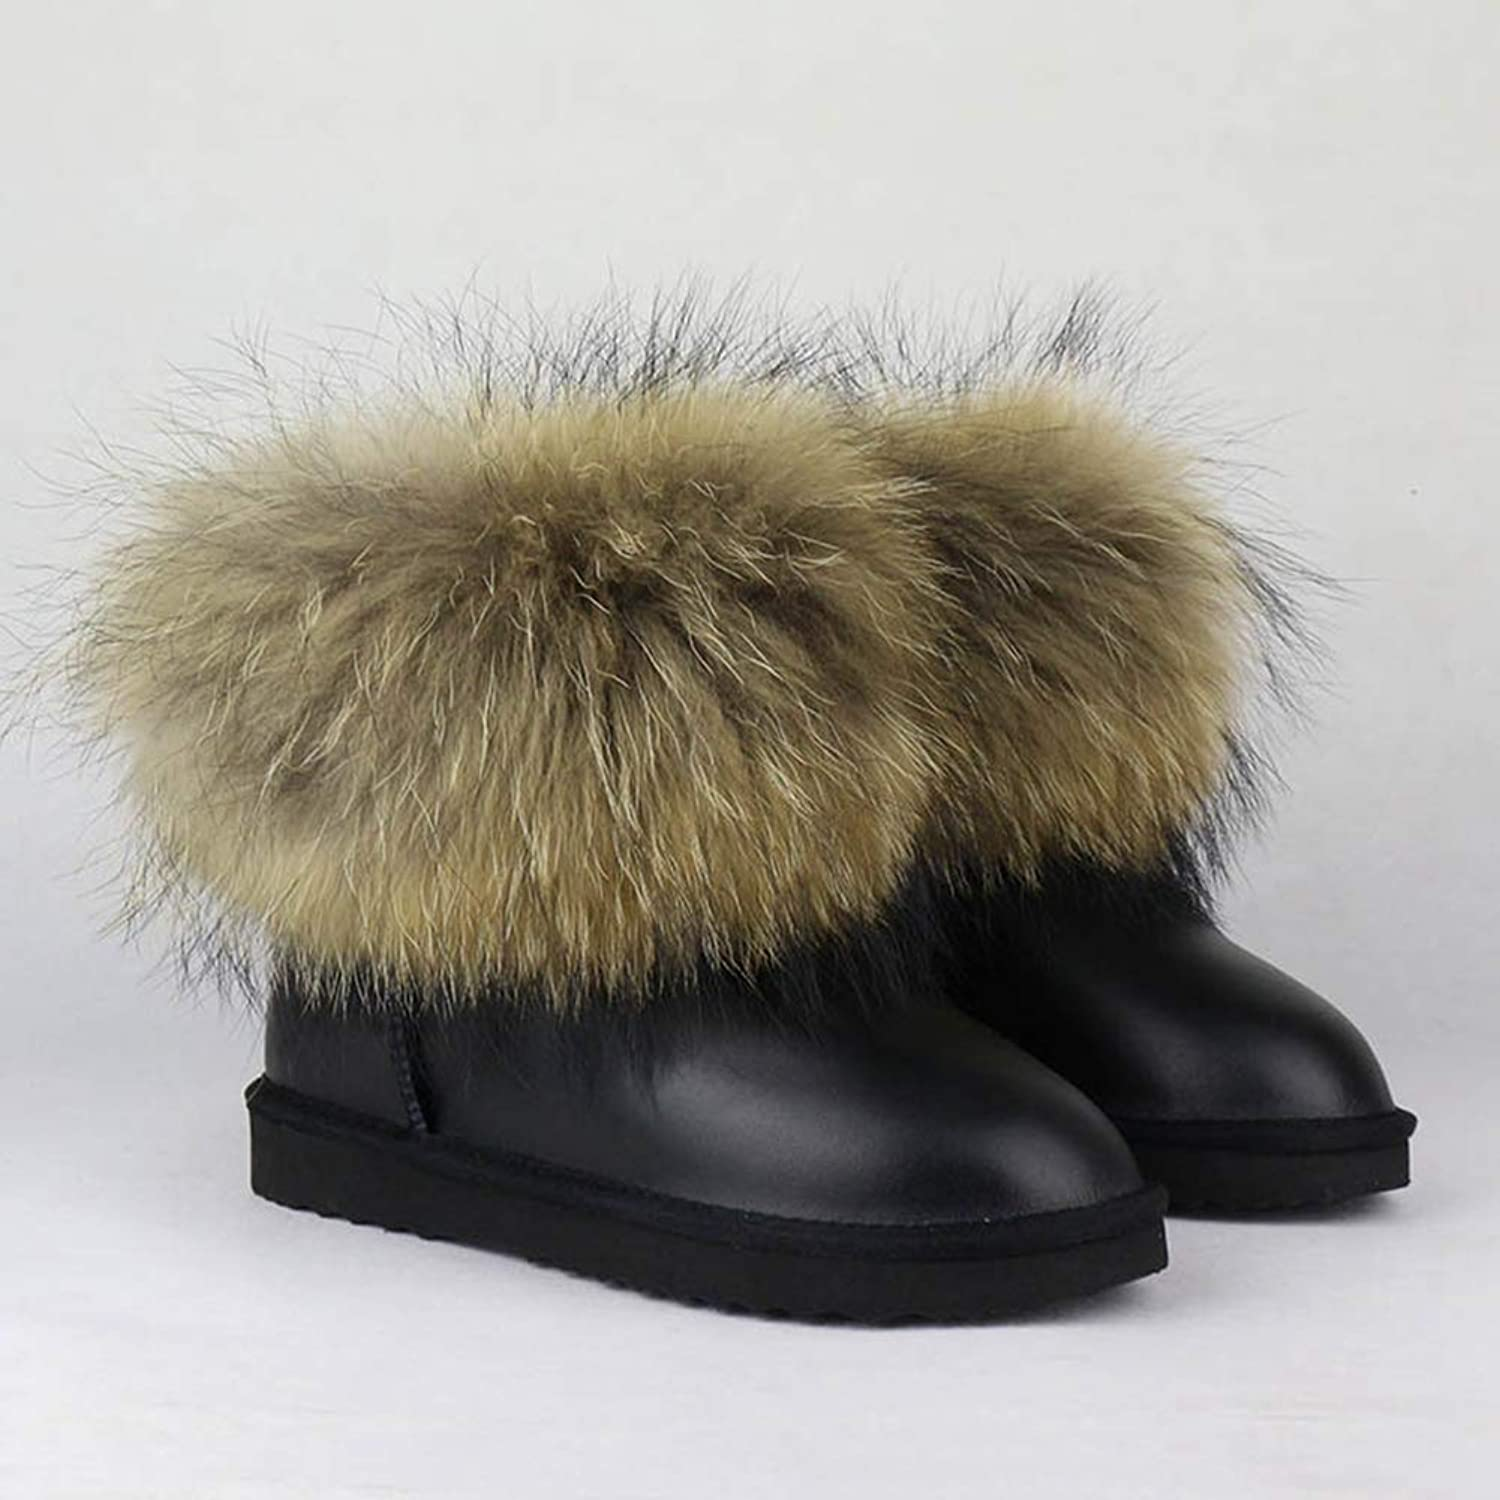 T-JULY Women's Snow Boots Top Fashion Natural Big Fox Fur Gneuine Leather Warm Winter Slip-On Ankle Raccoon Boots